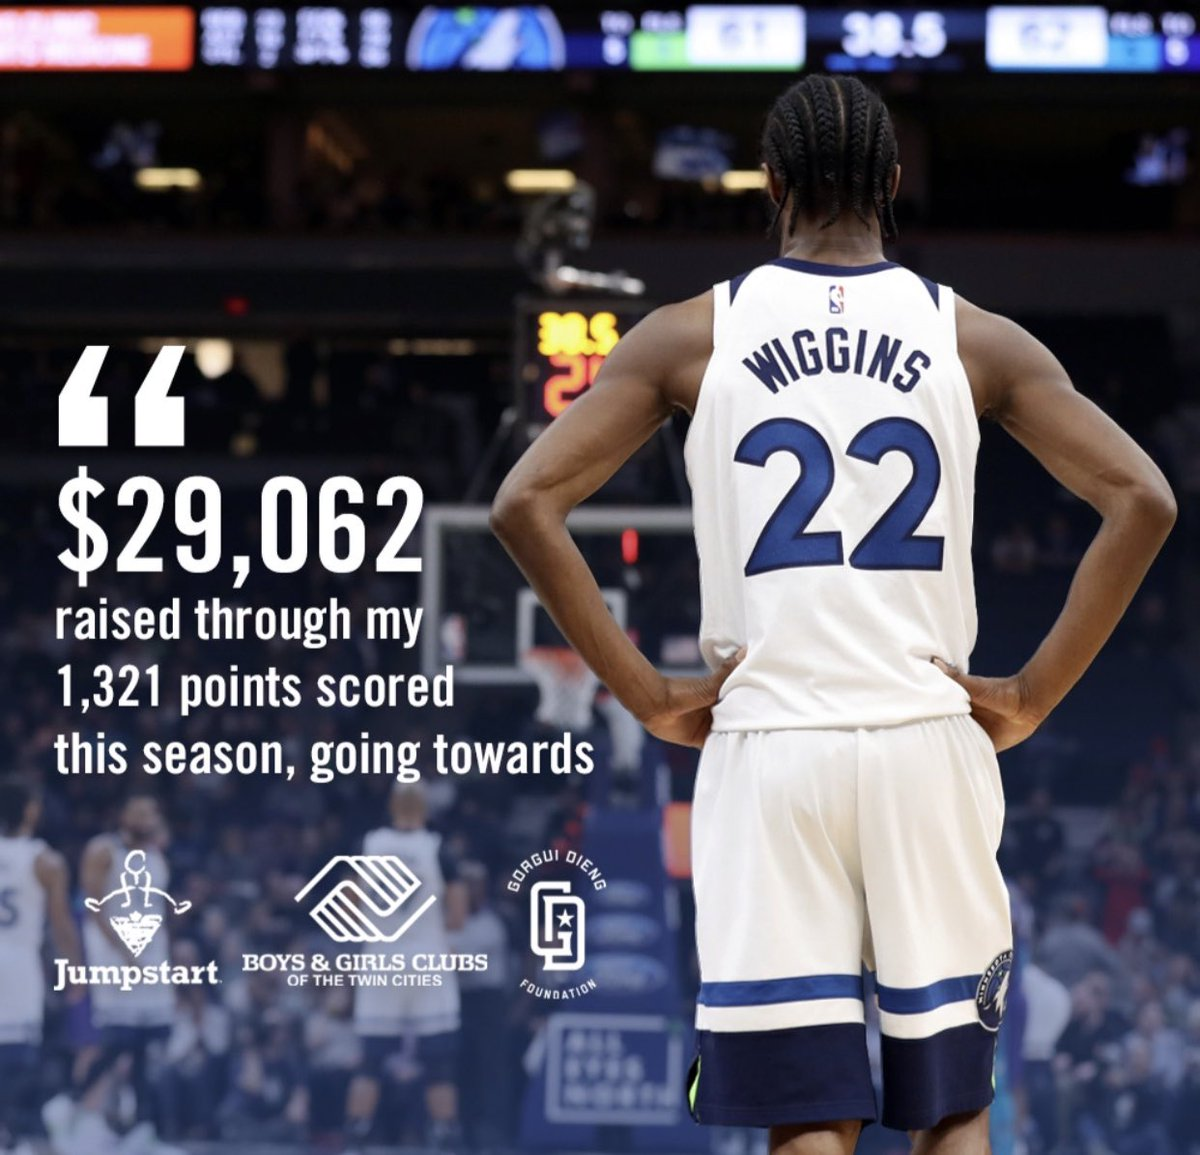 I'm excited to announce that by donating $22 for every point I scored this season, and with 1,321 points, I was able to donate a total of $29,062 to @CTJumpstart , Boys and Girls Club Of The Twin Cities , and @GorguiDieng Foundation!